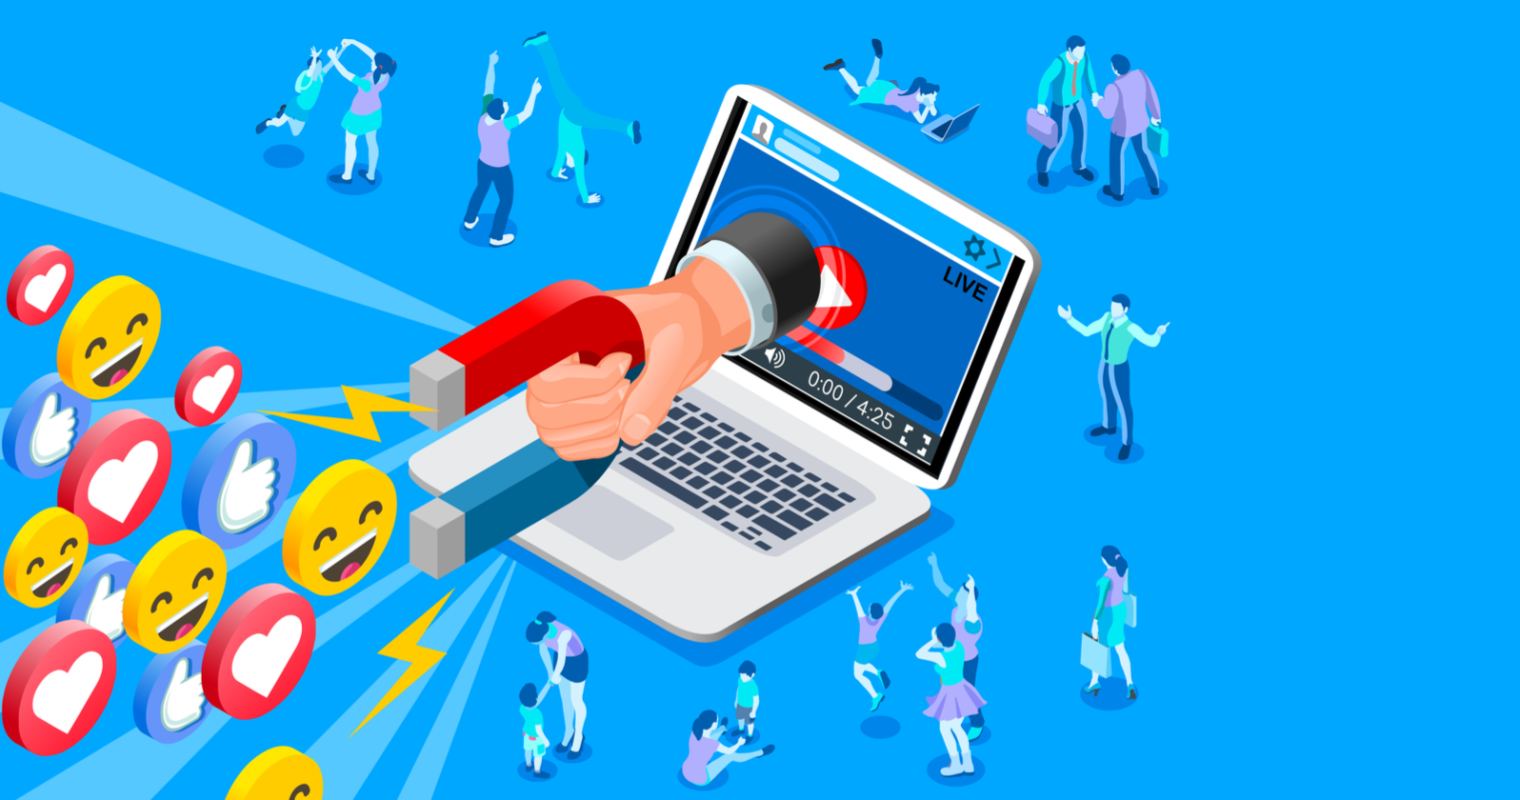 Top 9 Benefits of Social Media for Your Business